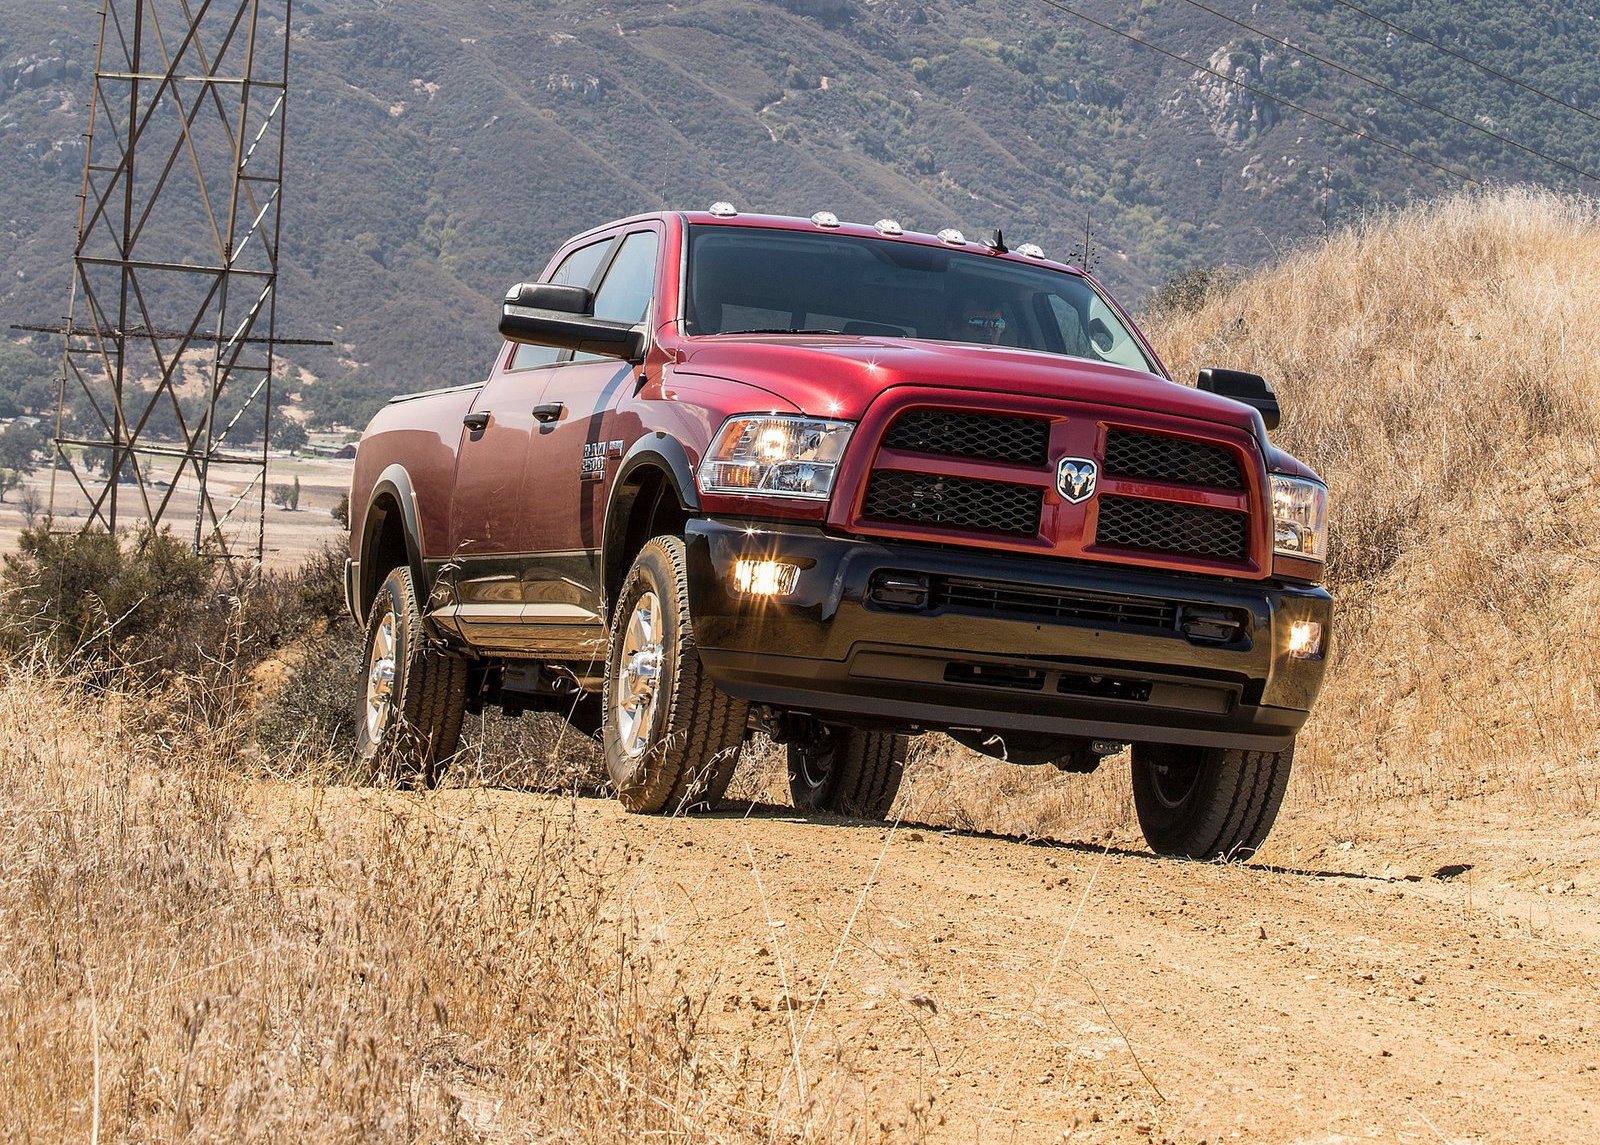 2015 ram 3500 hd cummins turbo diesel hiked to best in class 865 lb ft autoevolution. Black Bedroom Furniture Sets. Home Design Ideas